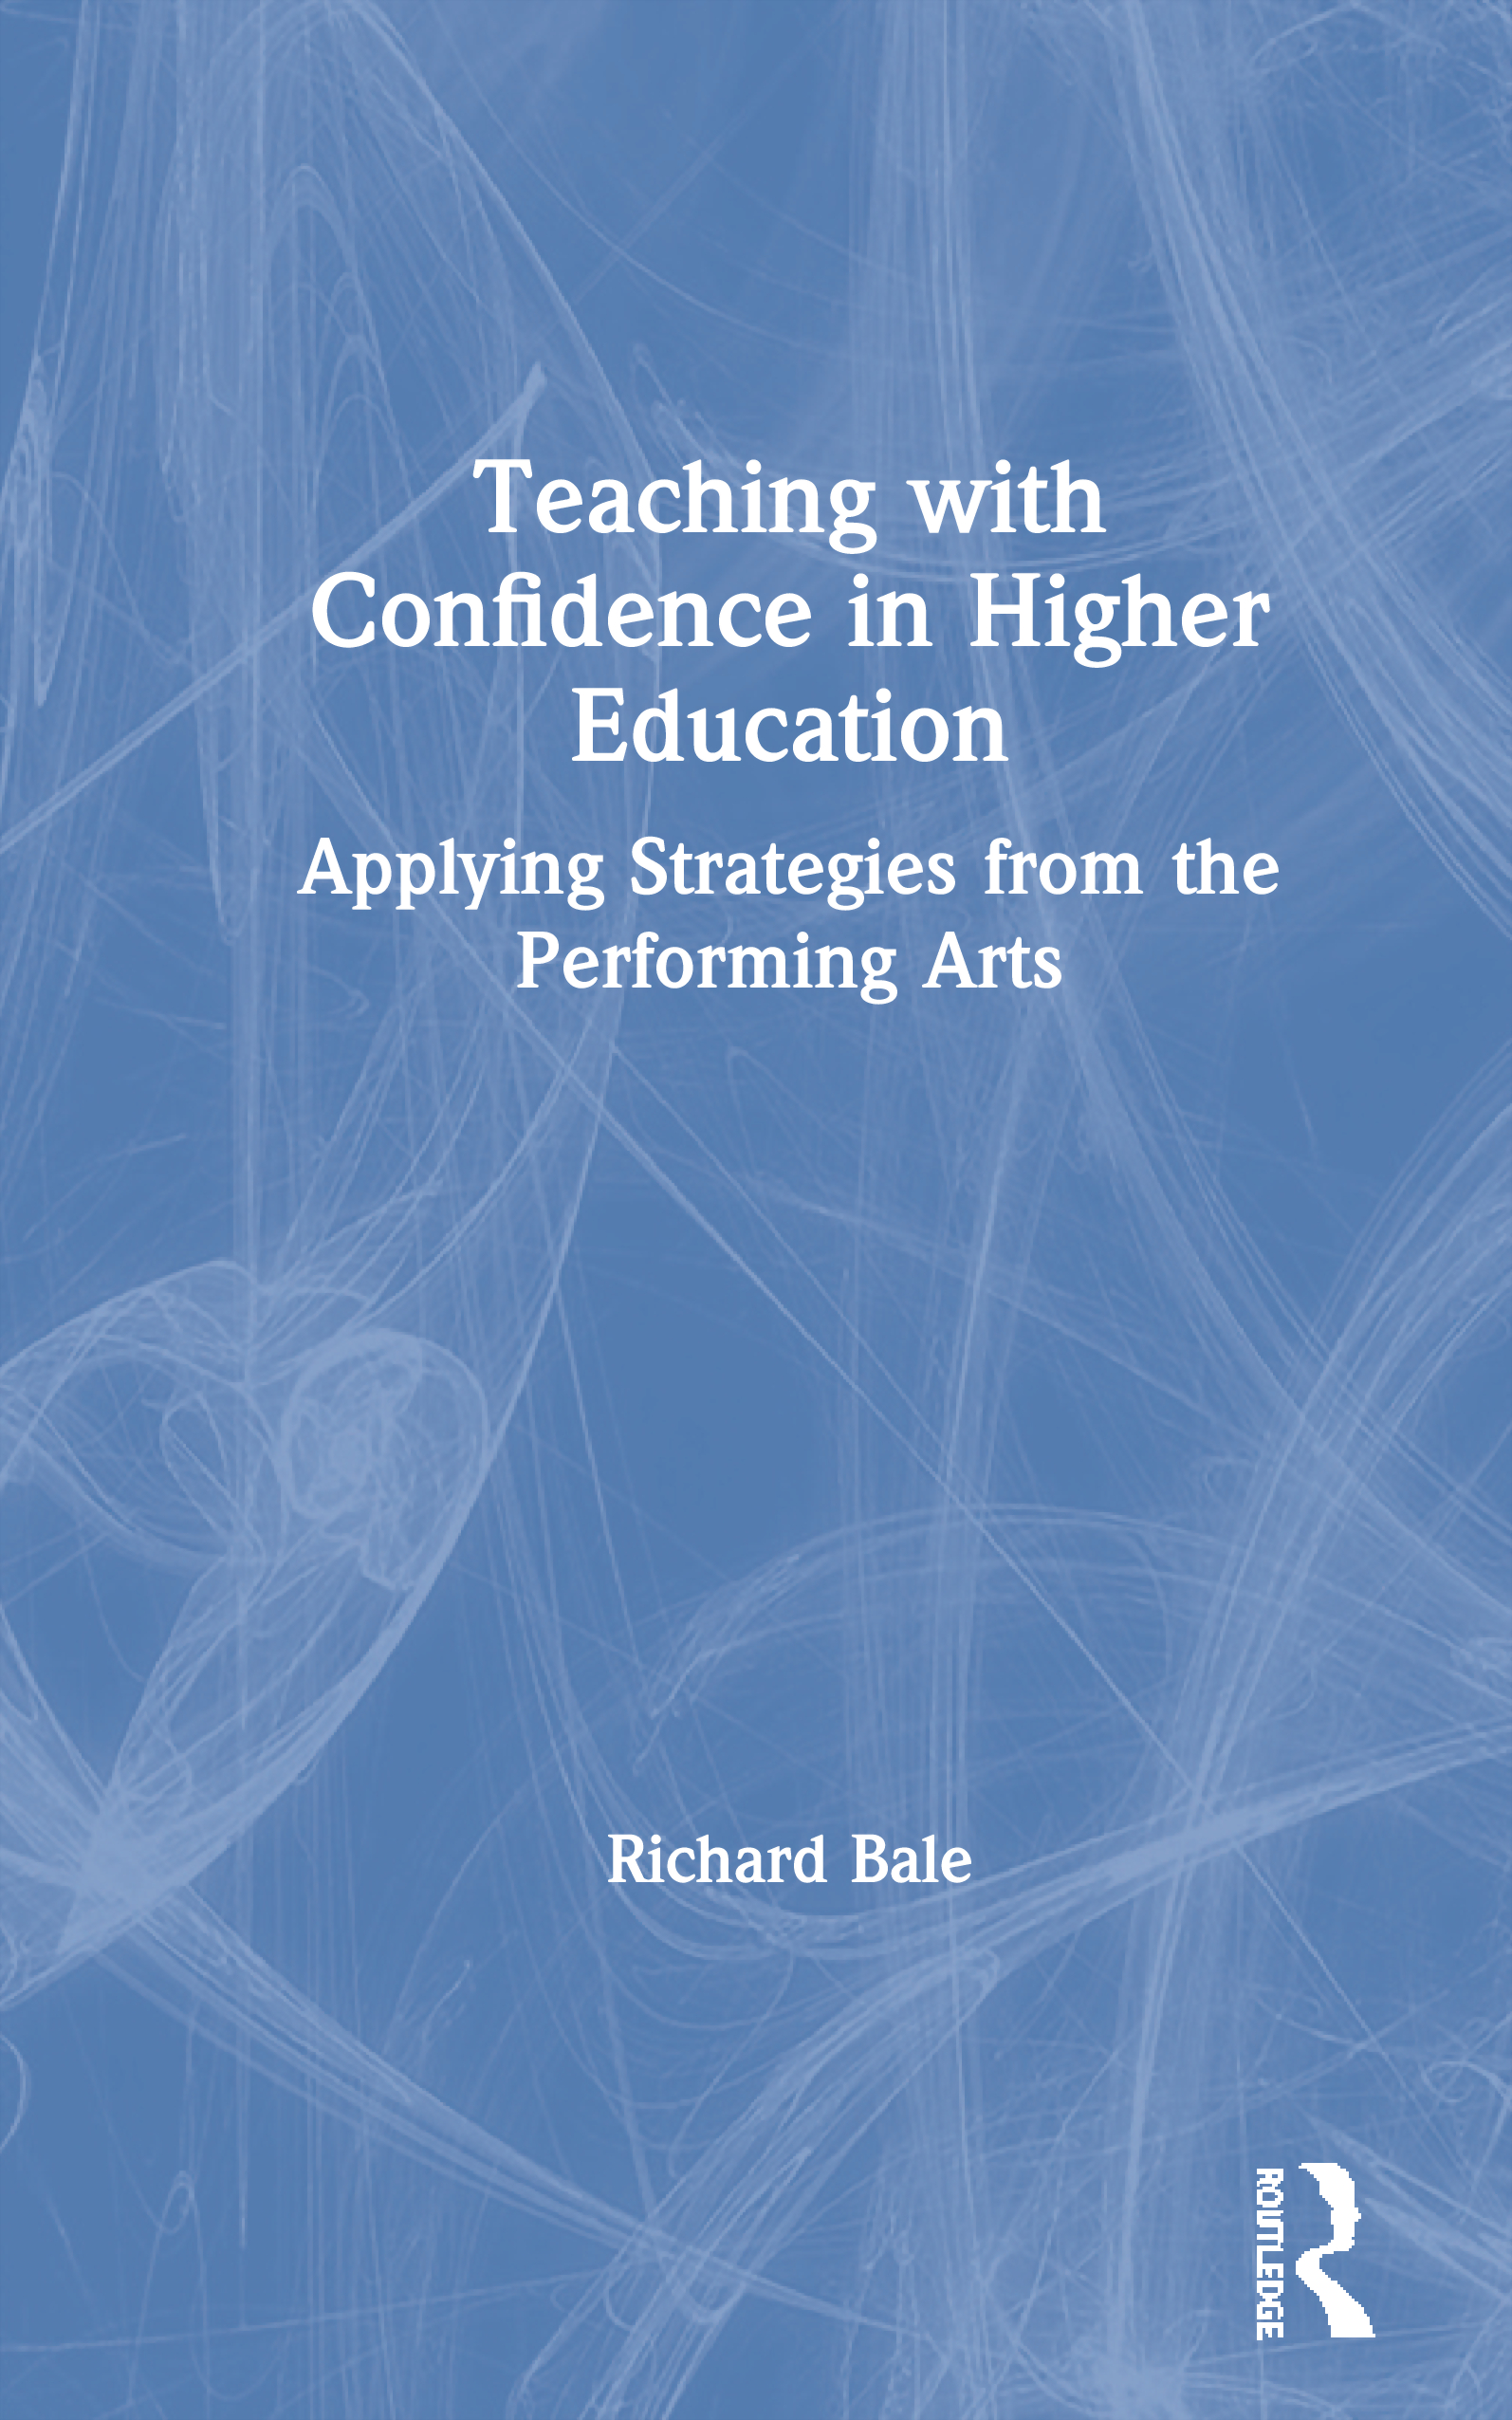 Teaching with Confidence in Higher Education: Applying Strategies from the Performing Arts book cover